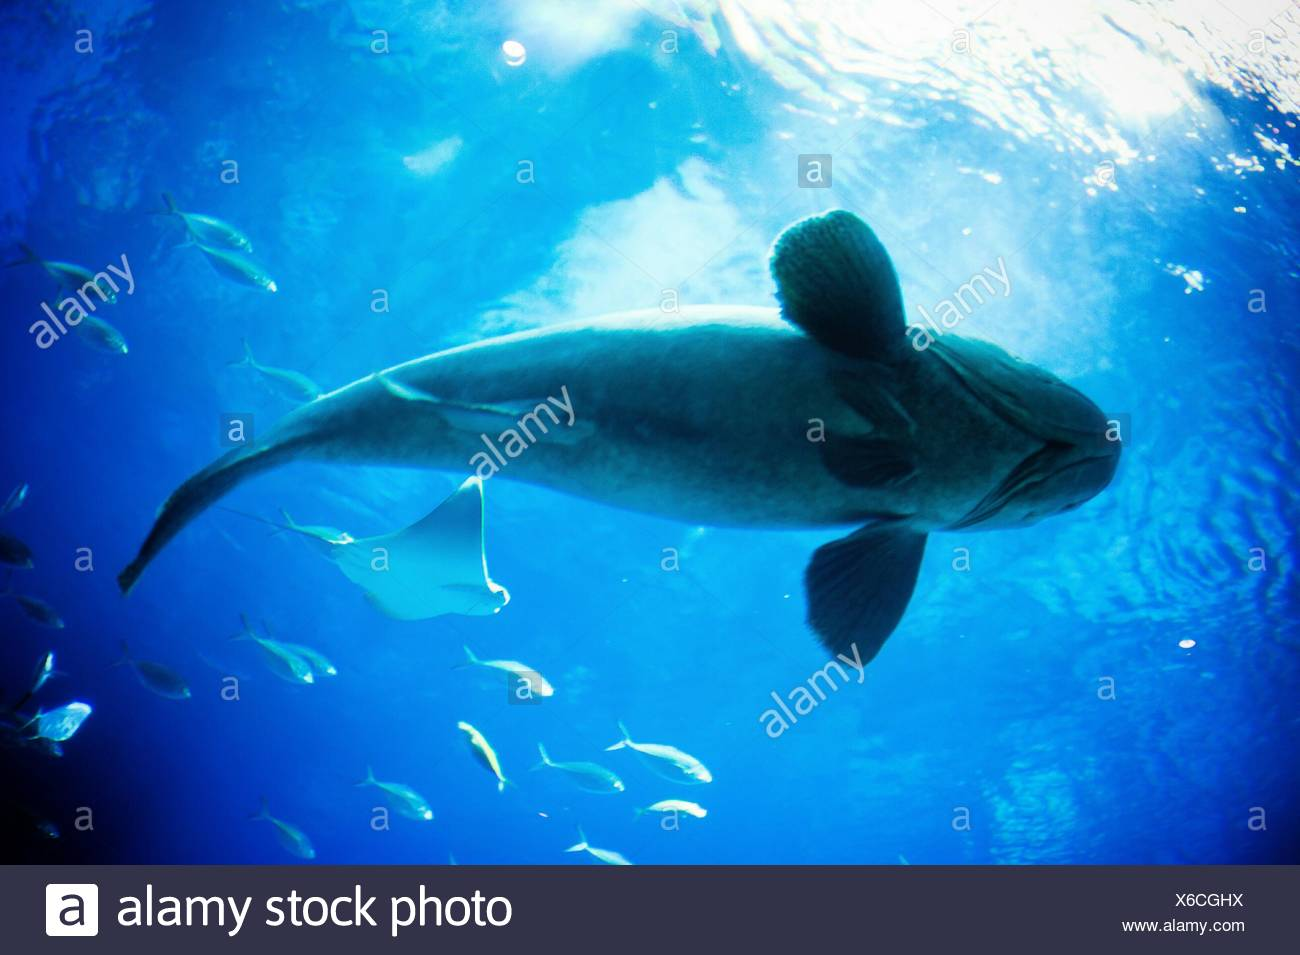 Underwater View Of Fish Stock Photo